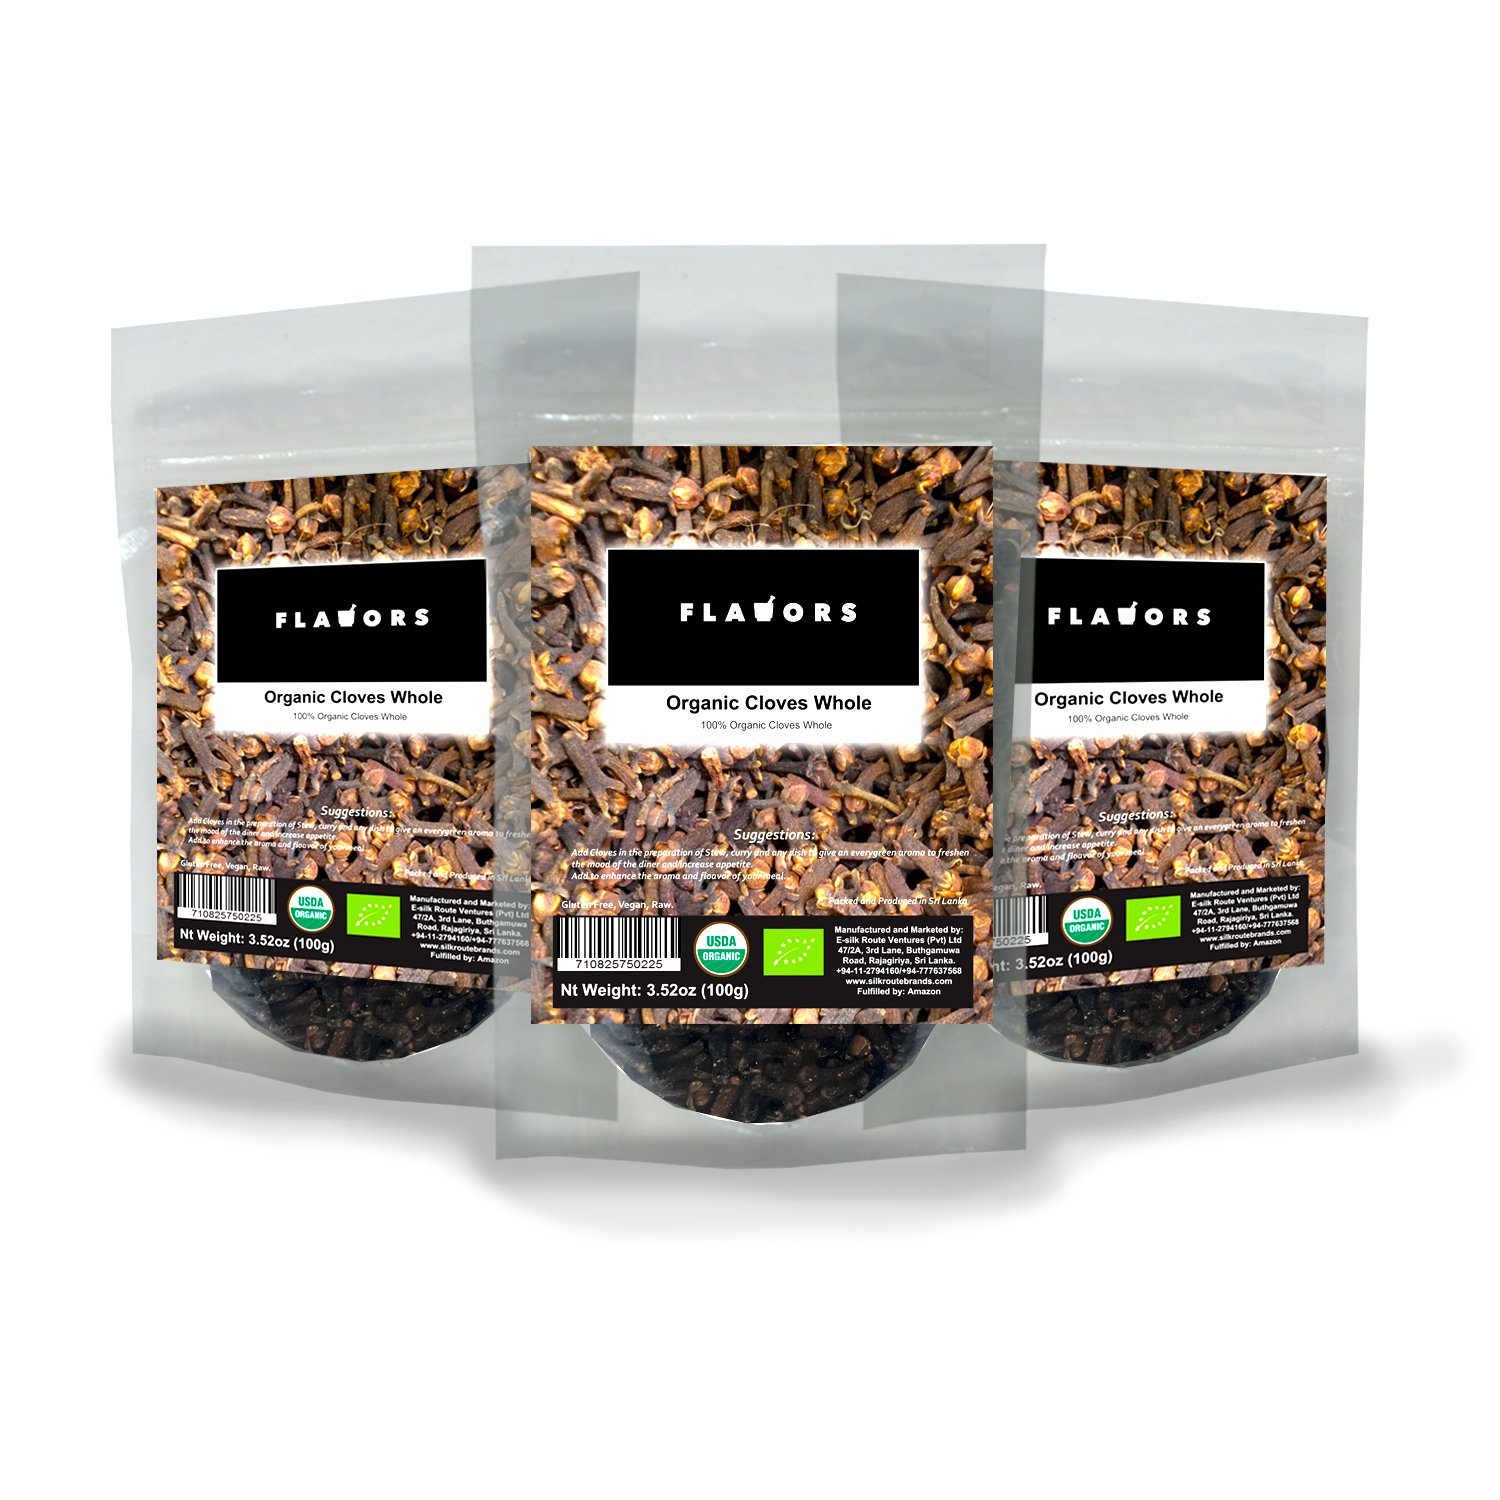 100% Organic Cloves Whole 300g USDA Certified - (100g x 3 Re-zippable Stand-Up Pouch!)